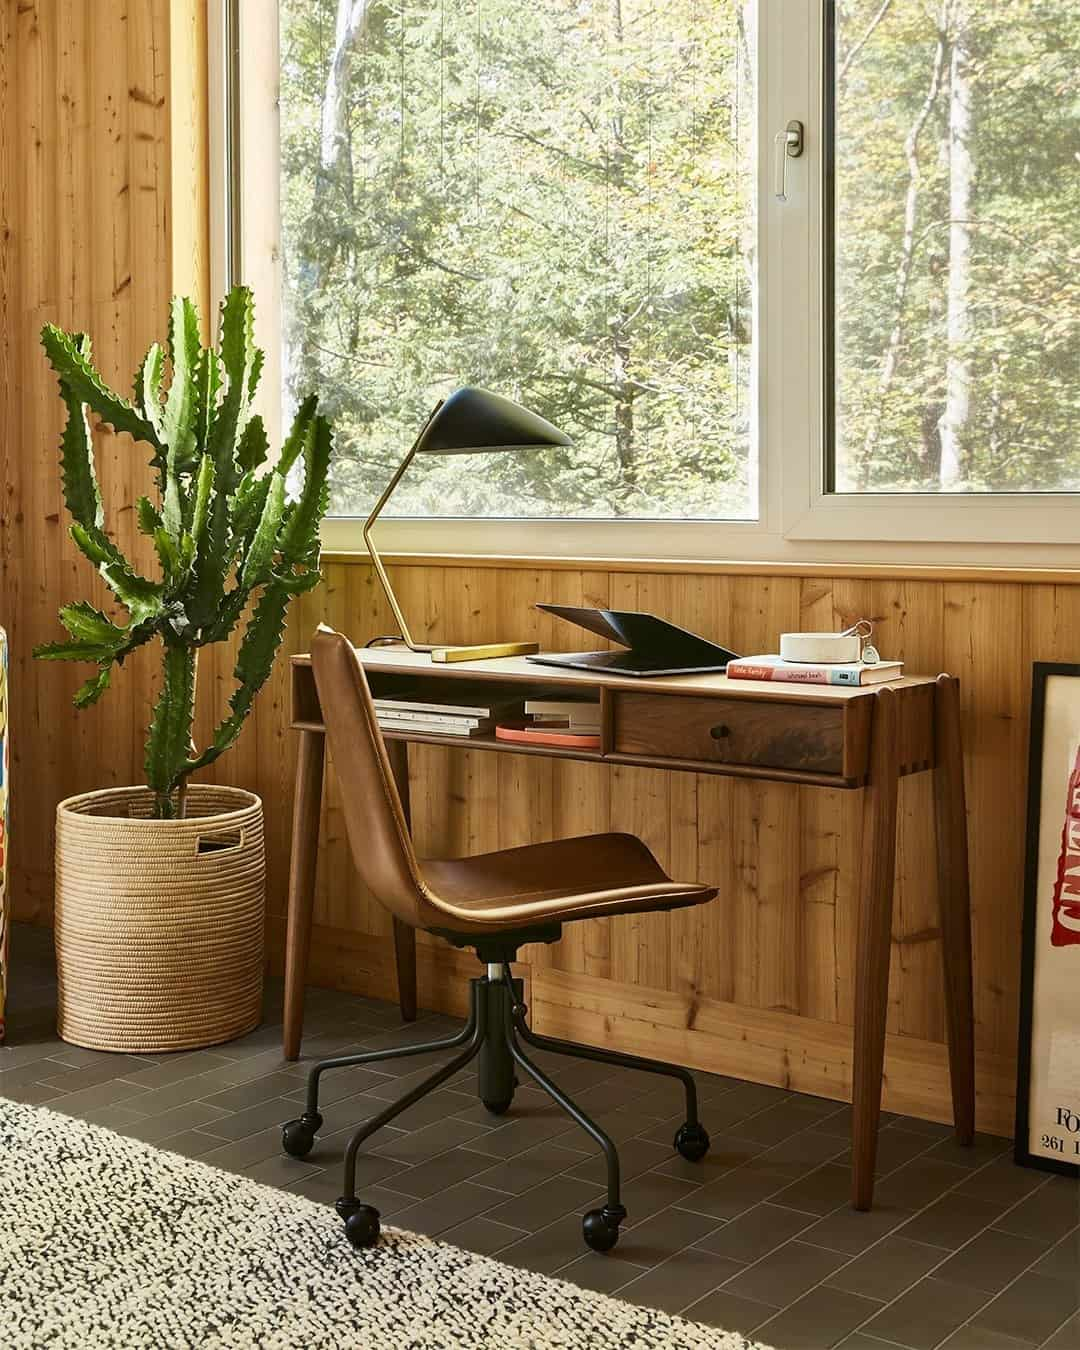 A small home office with a cactus plant